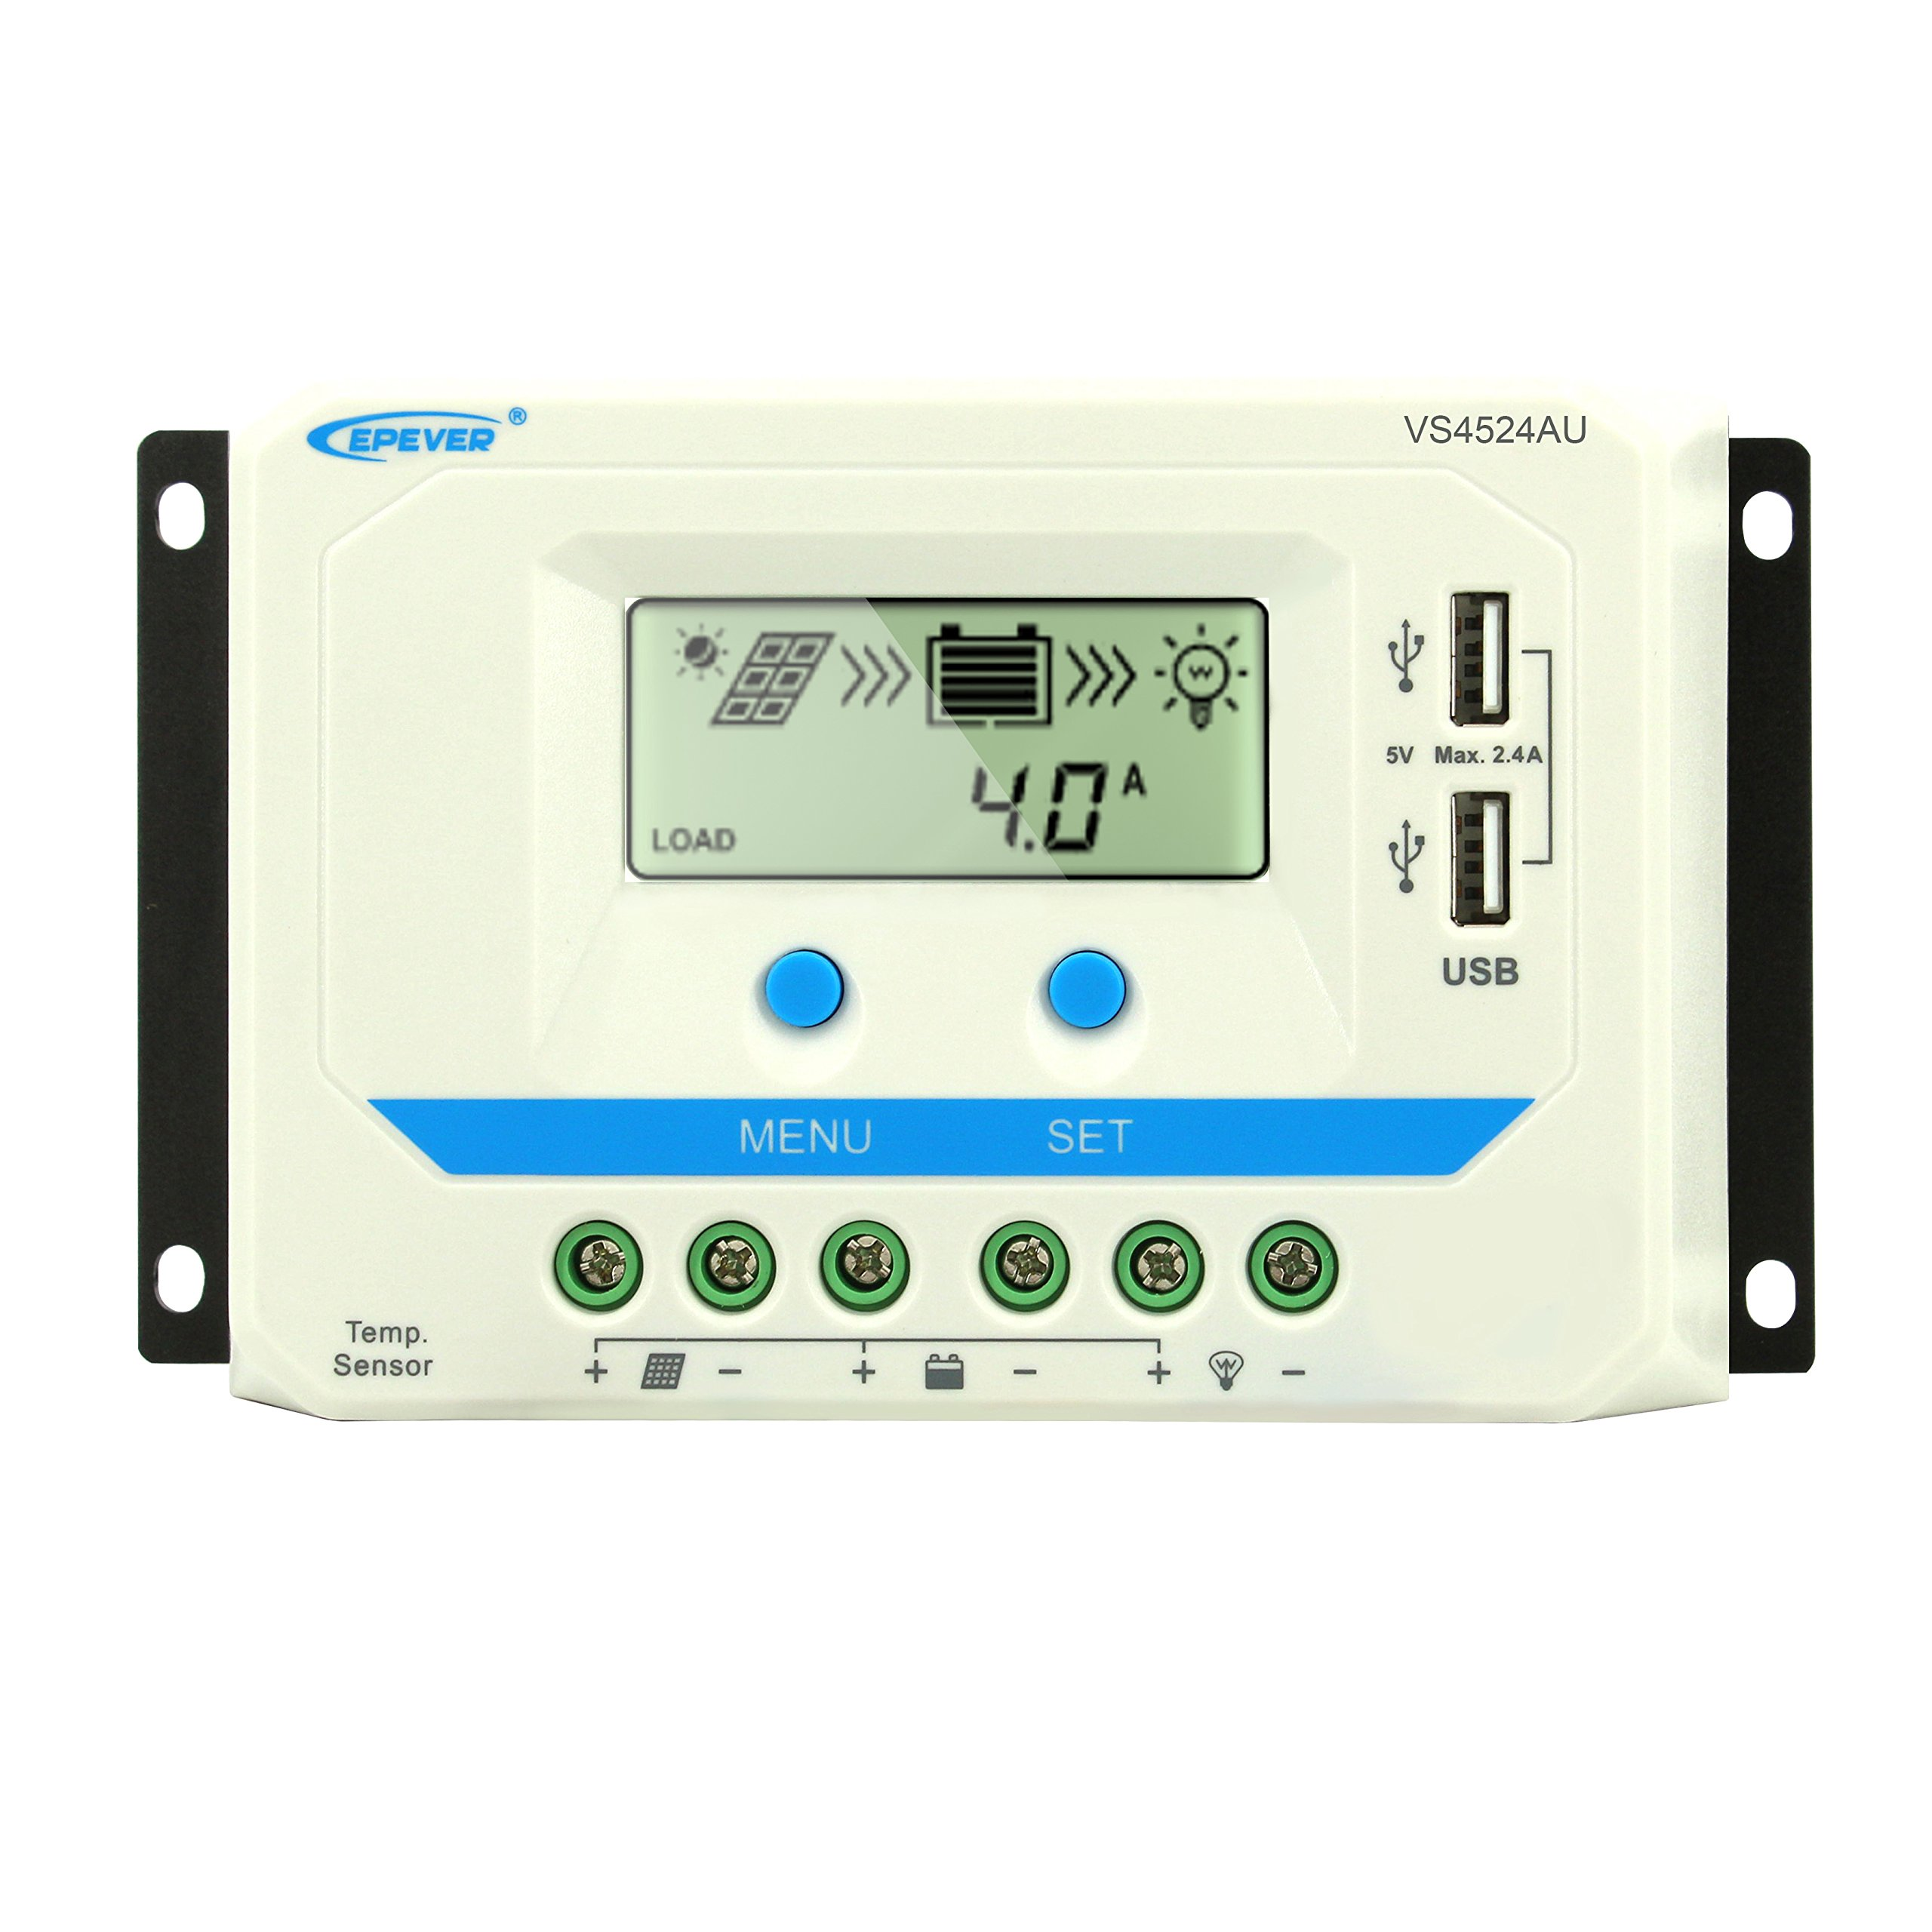 45A Solar Charge Controller 12V/24V Auto, EPEVER 45 amp Solar Panel Battery Charge Regulator with LCD Display Dual USB Output for Lead Acid (AGM Sealed Gel Flooded) Battery by PowMr